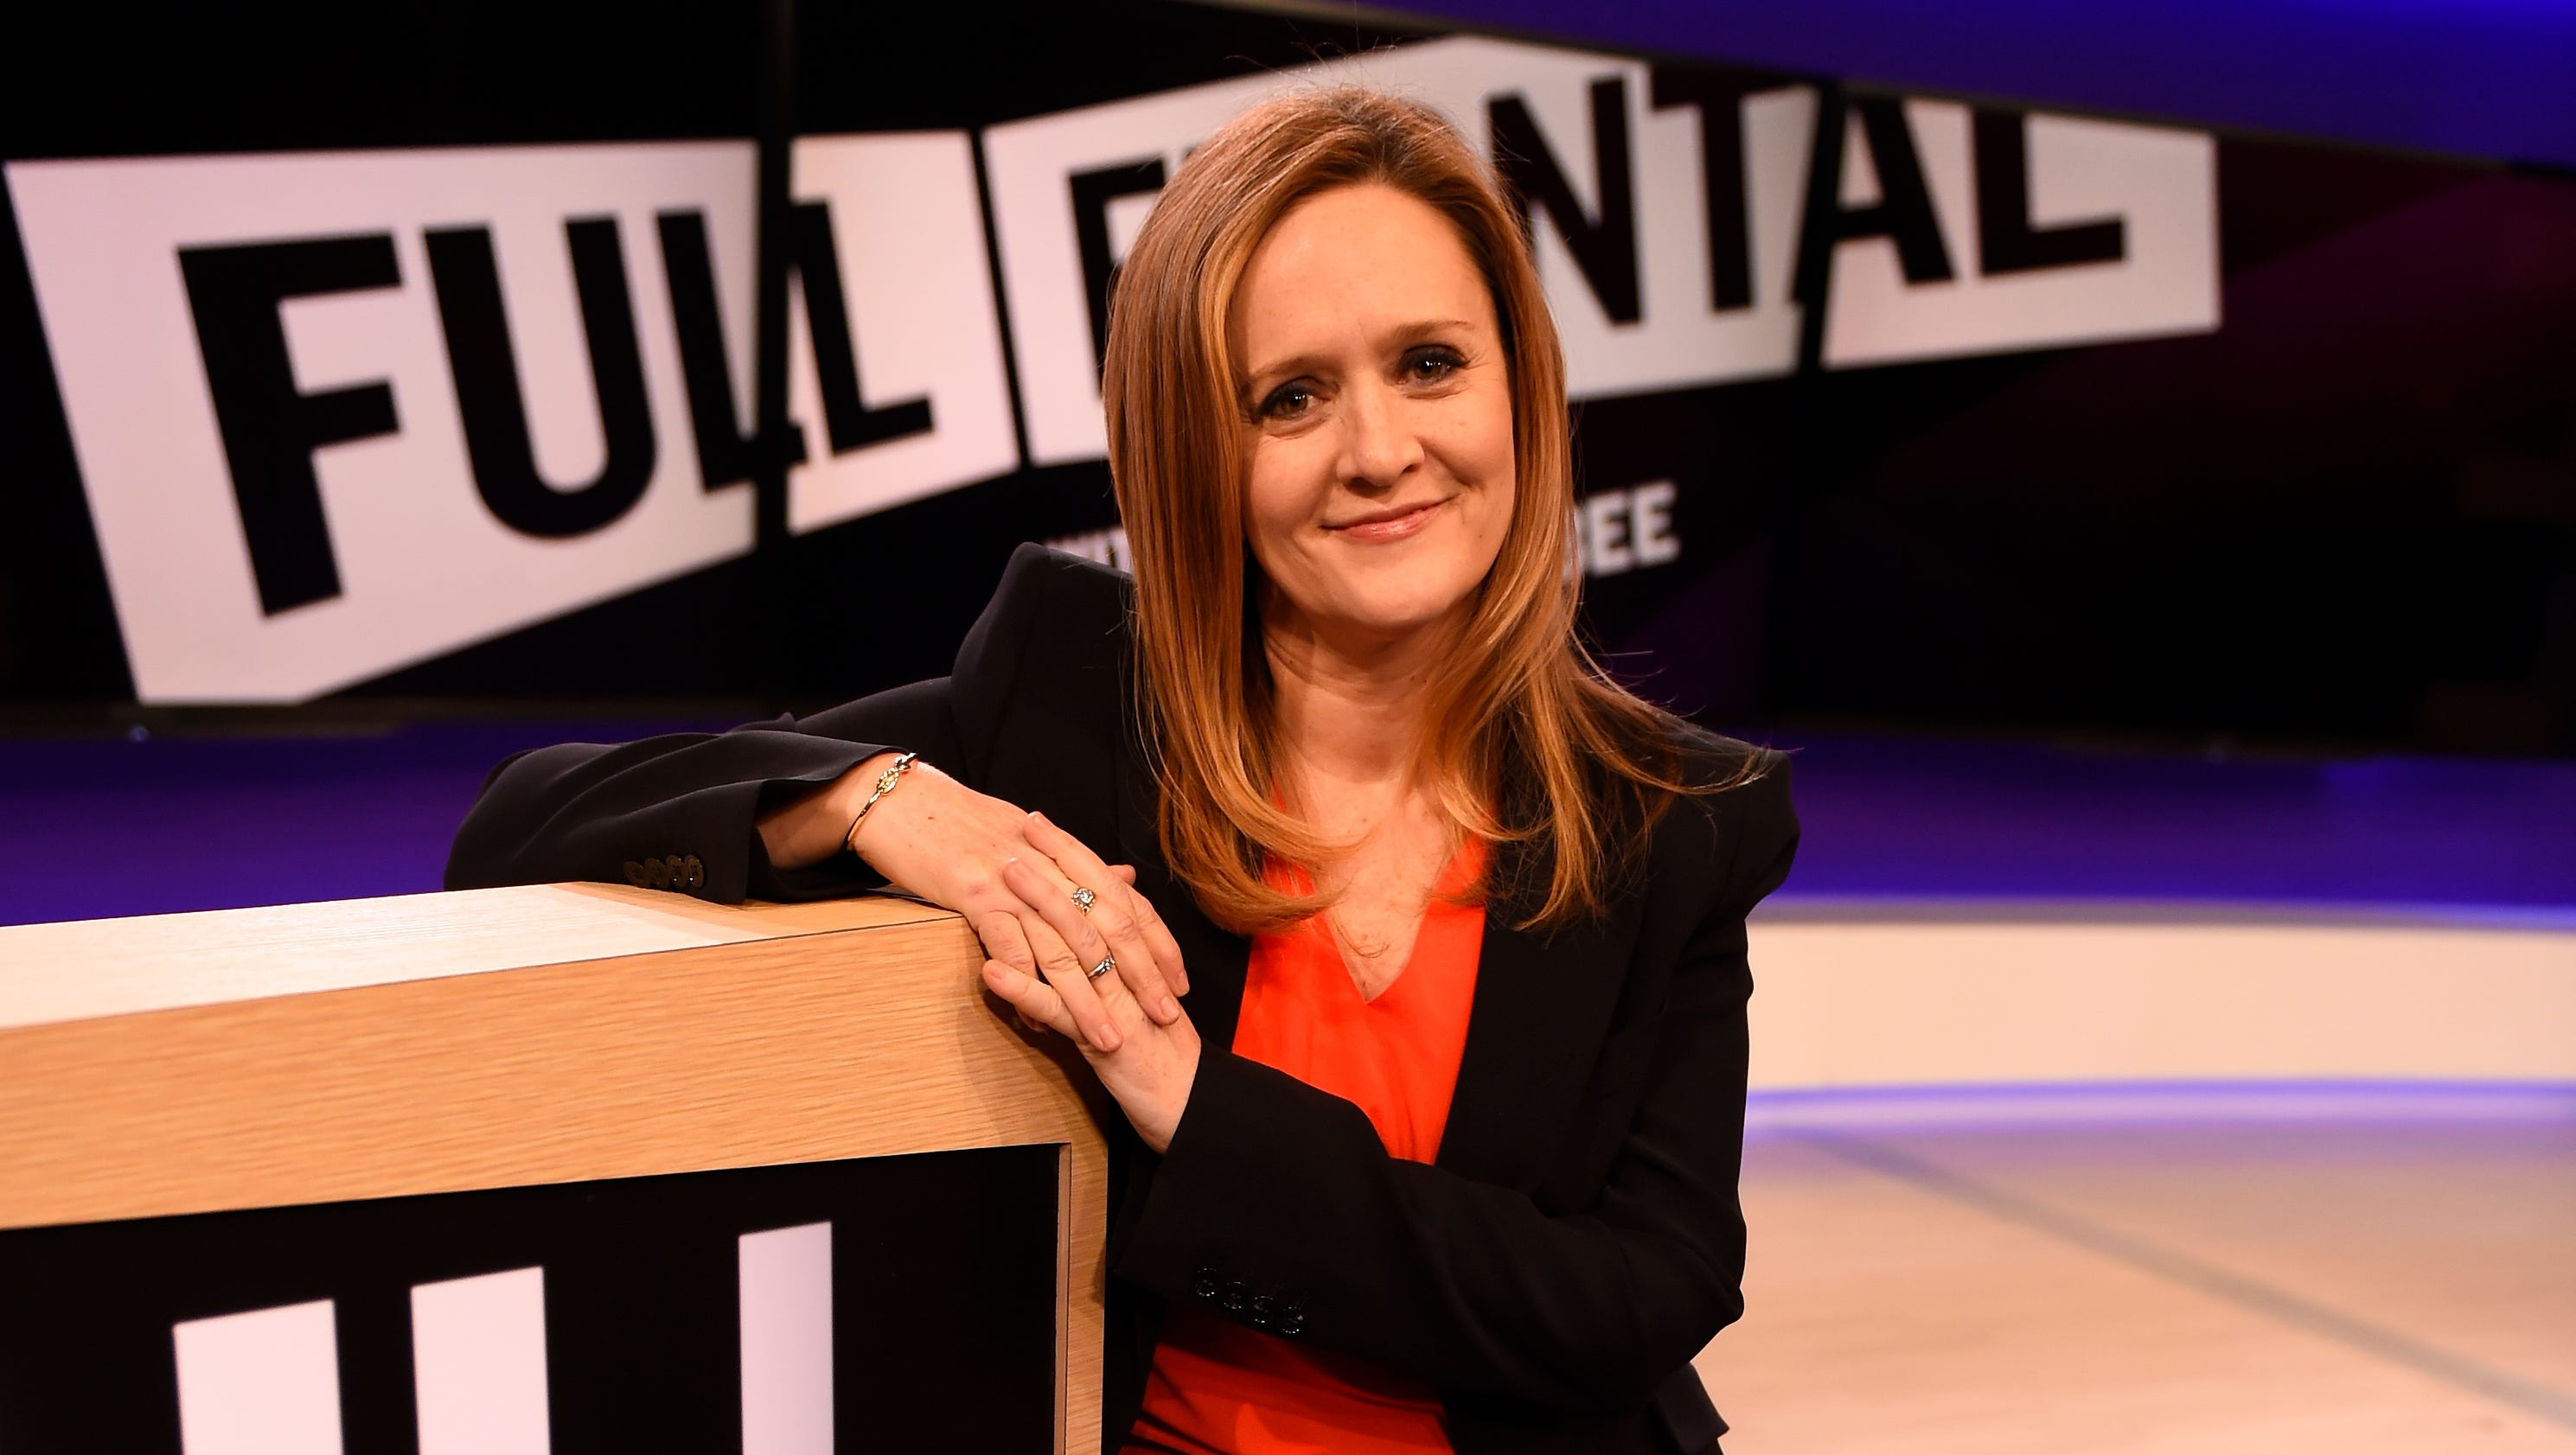 Daily Show's' Samantha Bee goes 'Full Frontal' with her own TBS ...